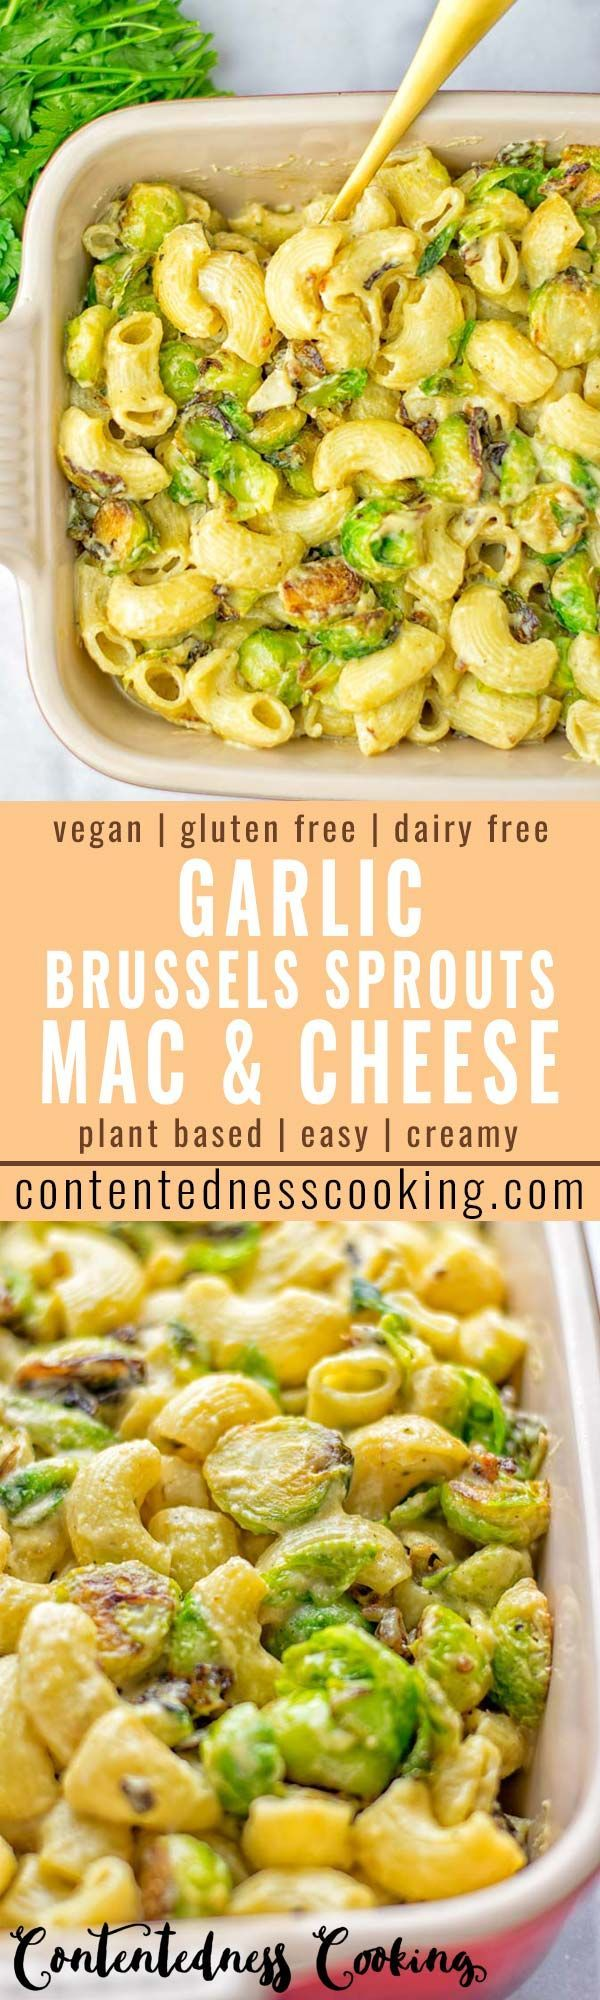 Garlic Brussels Sprouts Mac and Cheese